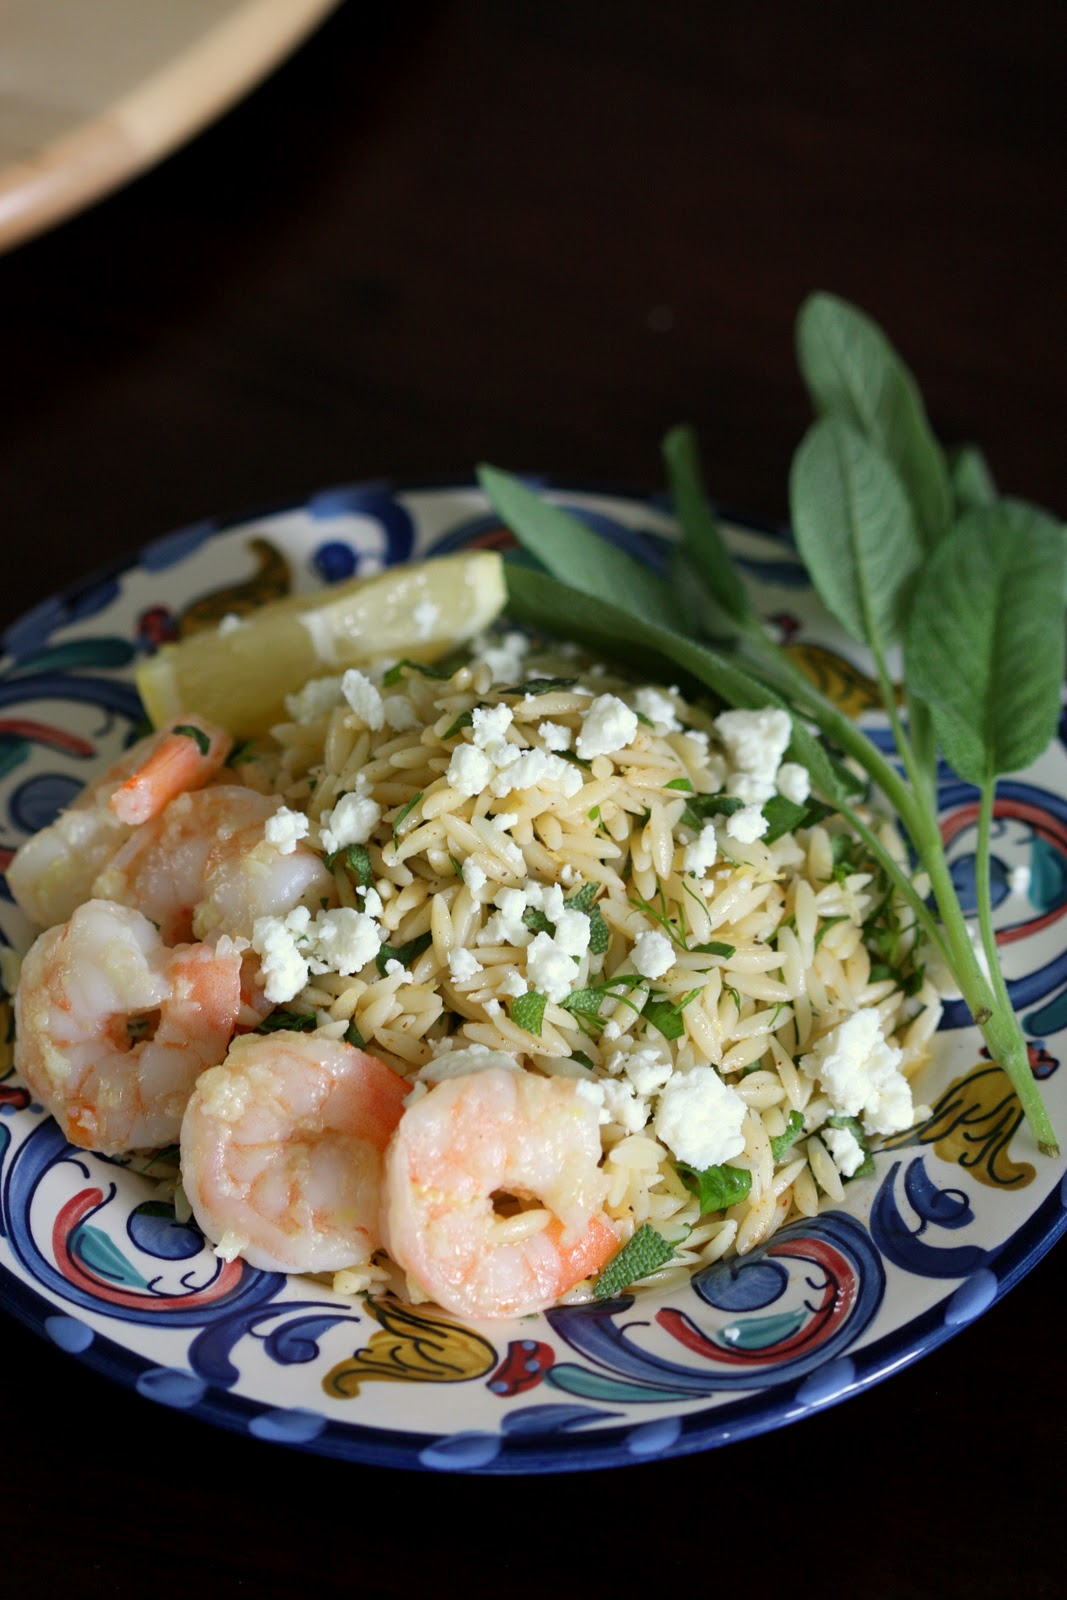 Lemony Orzo with Shrimp and Herbs | Wandering Spice